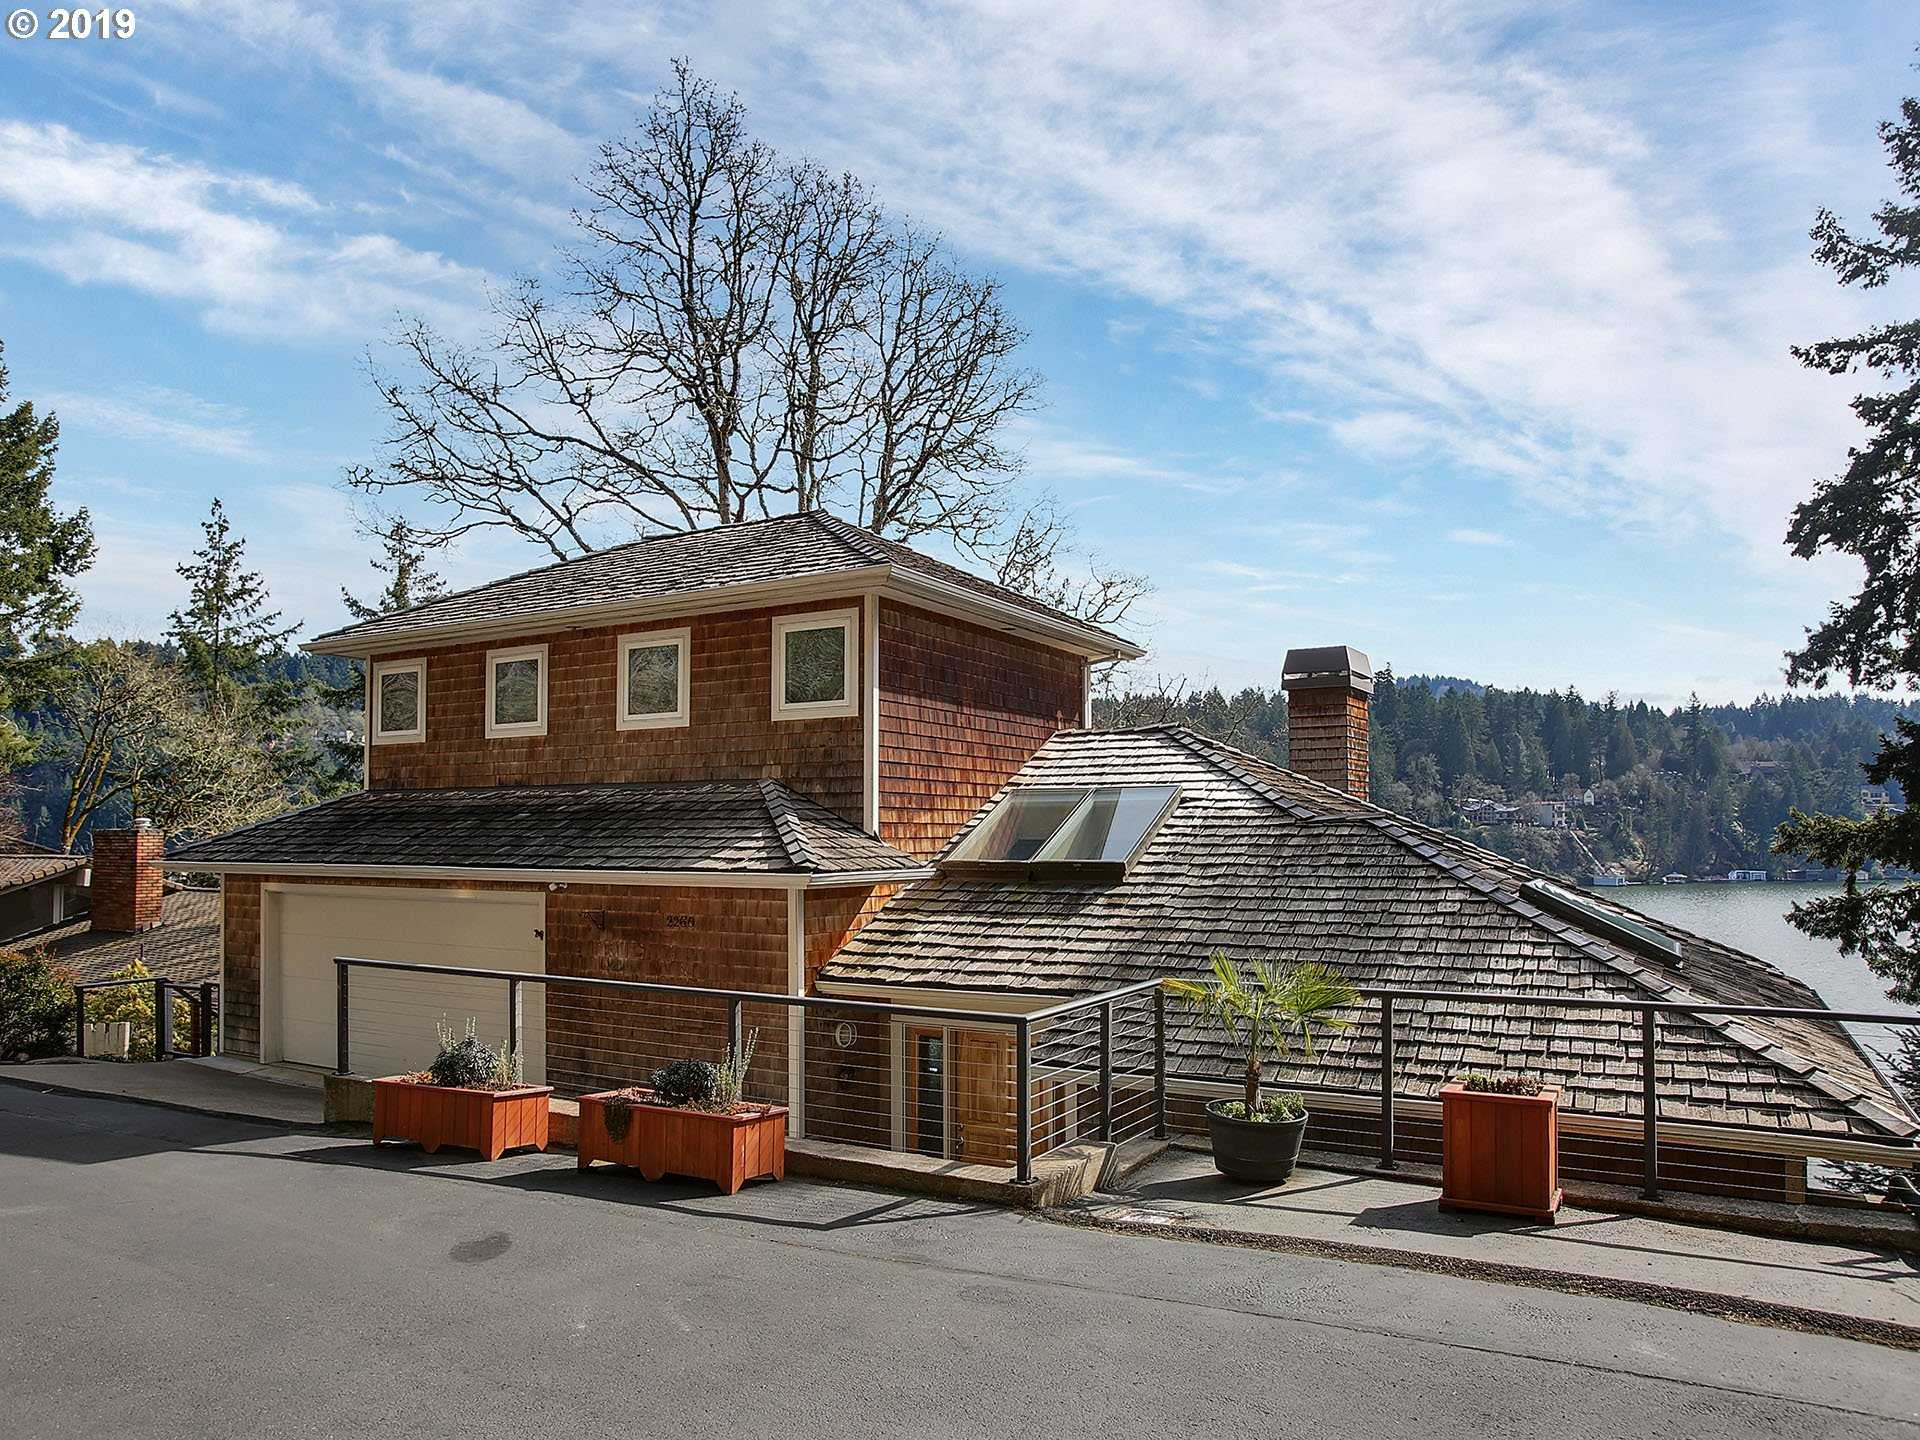 $1,998,000 - 5Br/5Ba -  for Sale in Main Lake Oswego, Lake Oswego